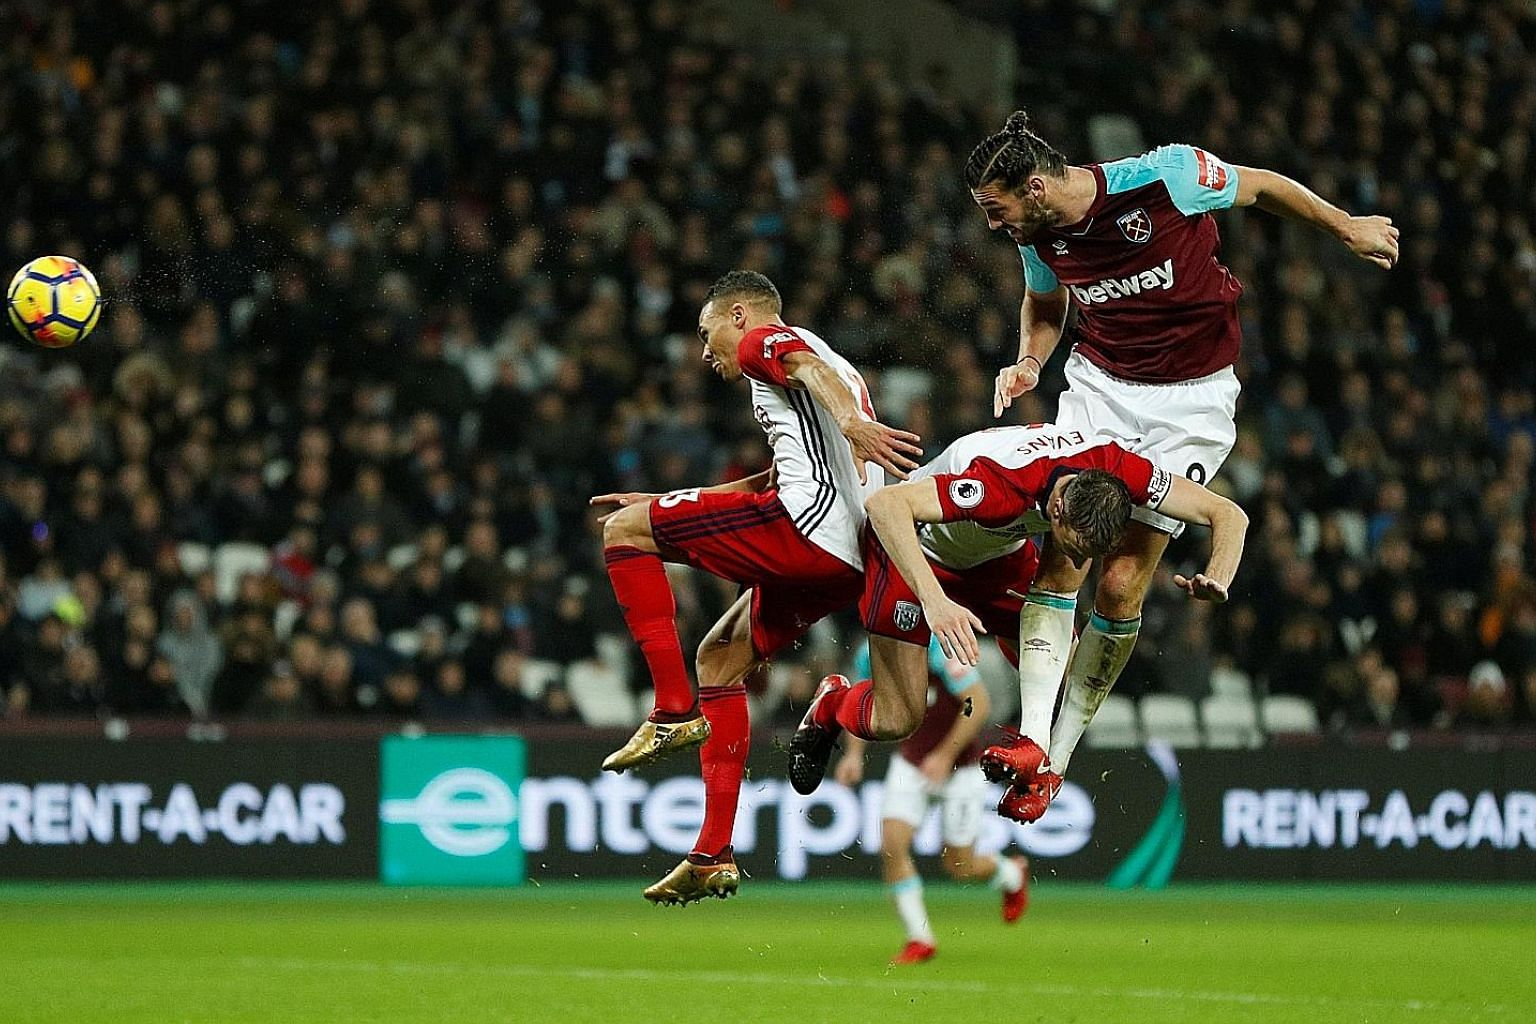 West Ham's Andy Carroll outjumping West Brom defenders Jonny Evans (centre) and Kieran Gibbs to equalise. The English striker later completed the comeback with a stoppage-time winner as the Hammers ended a four-game winless run.